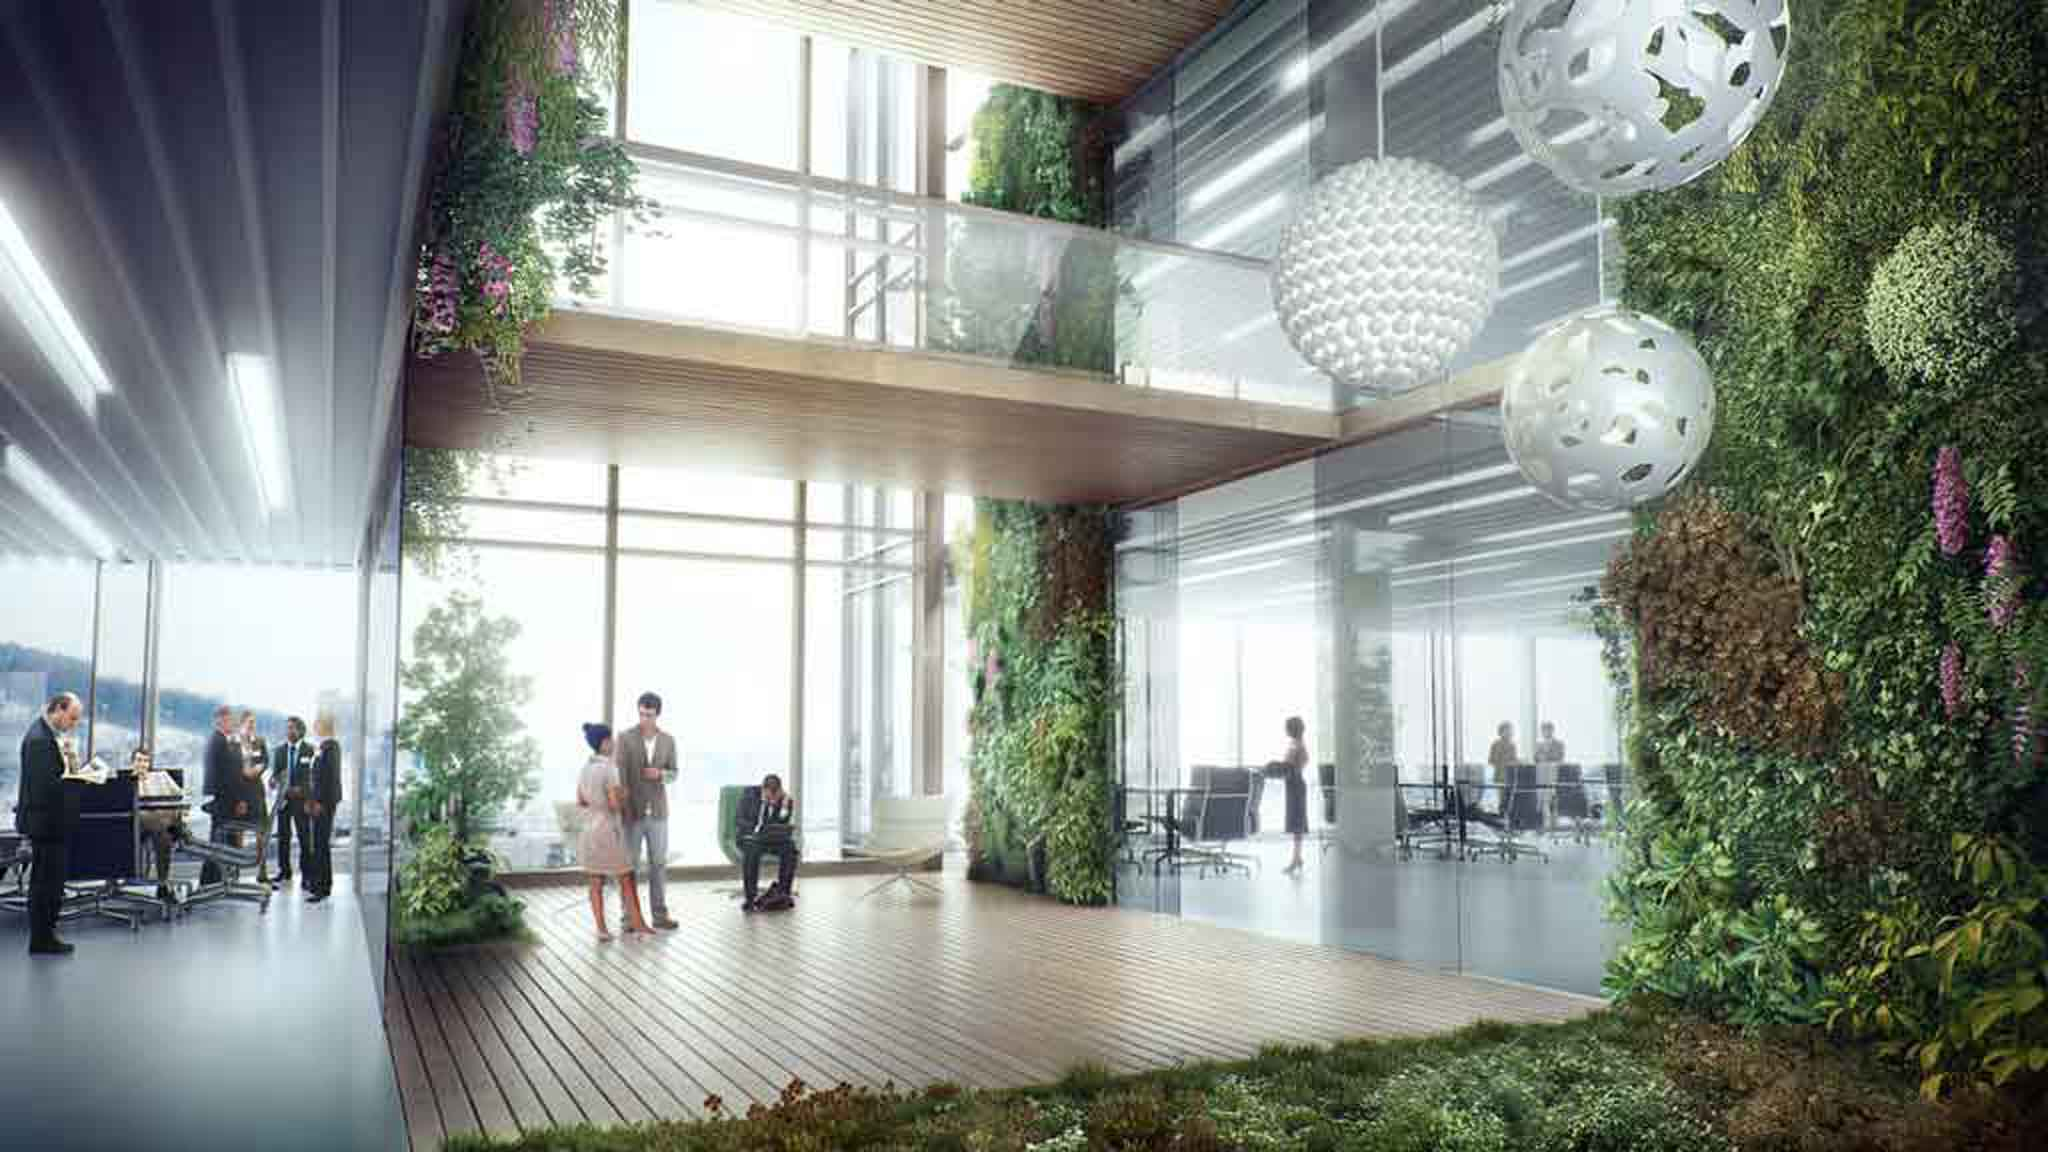 norway_tower_building_render_interior2-1